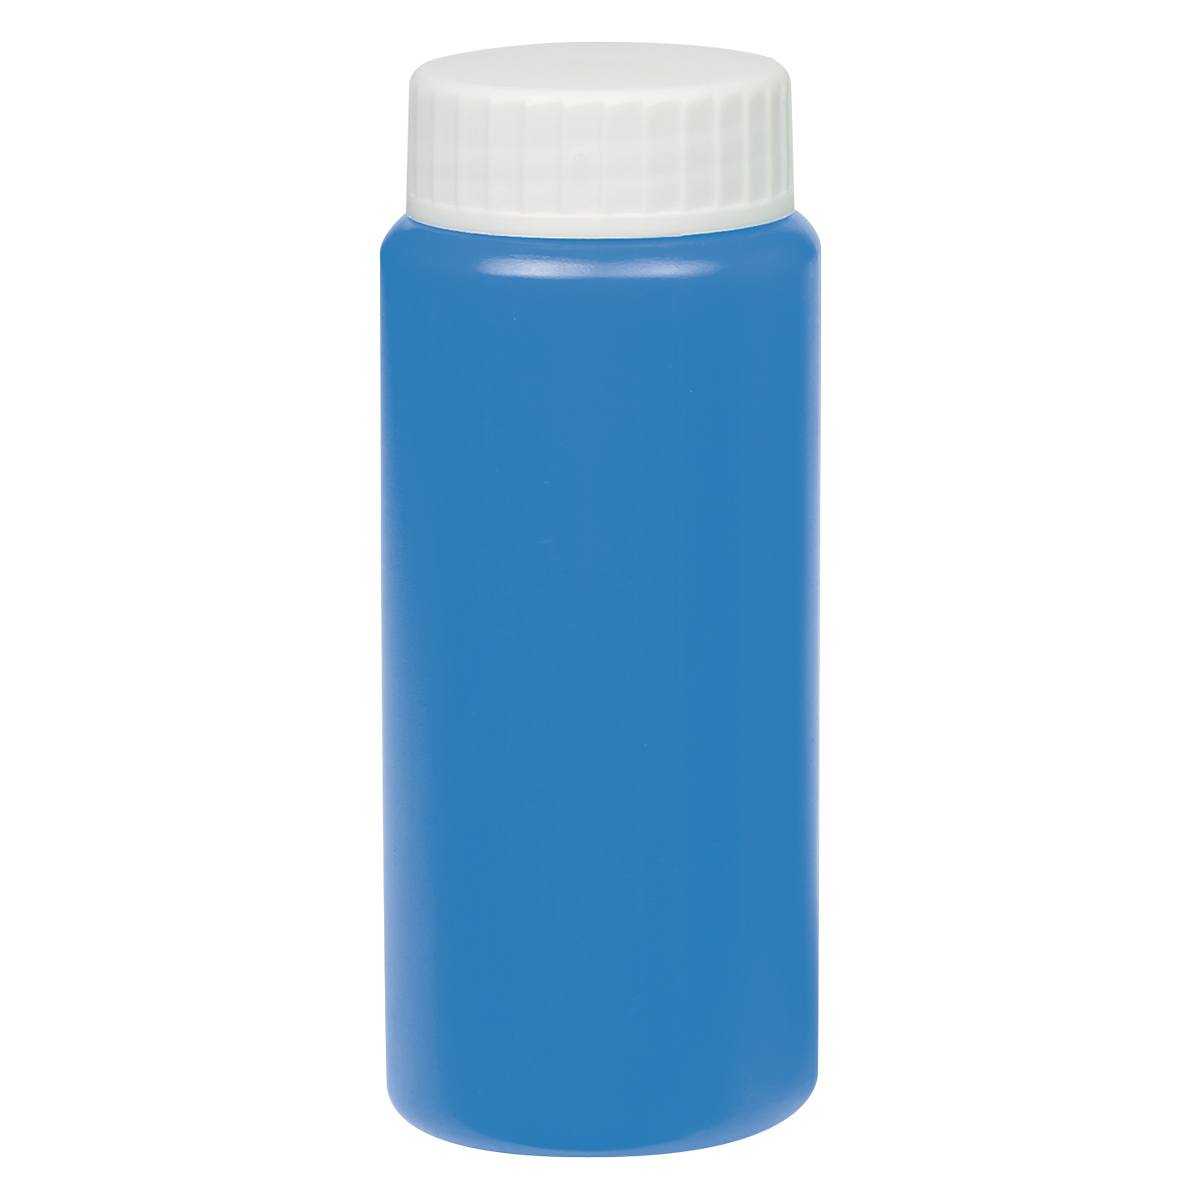 #CM 768 - 2 Oz. Fun Time Bubble Dispenser